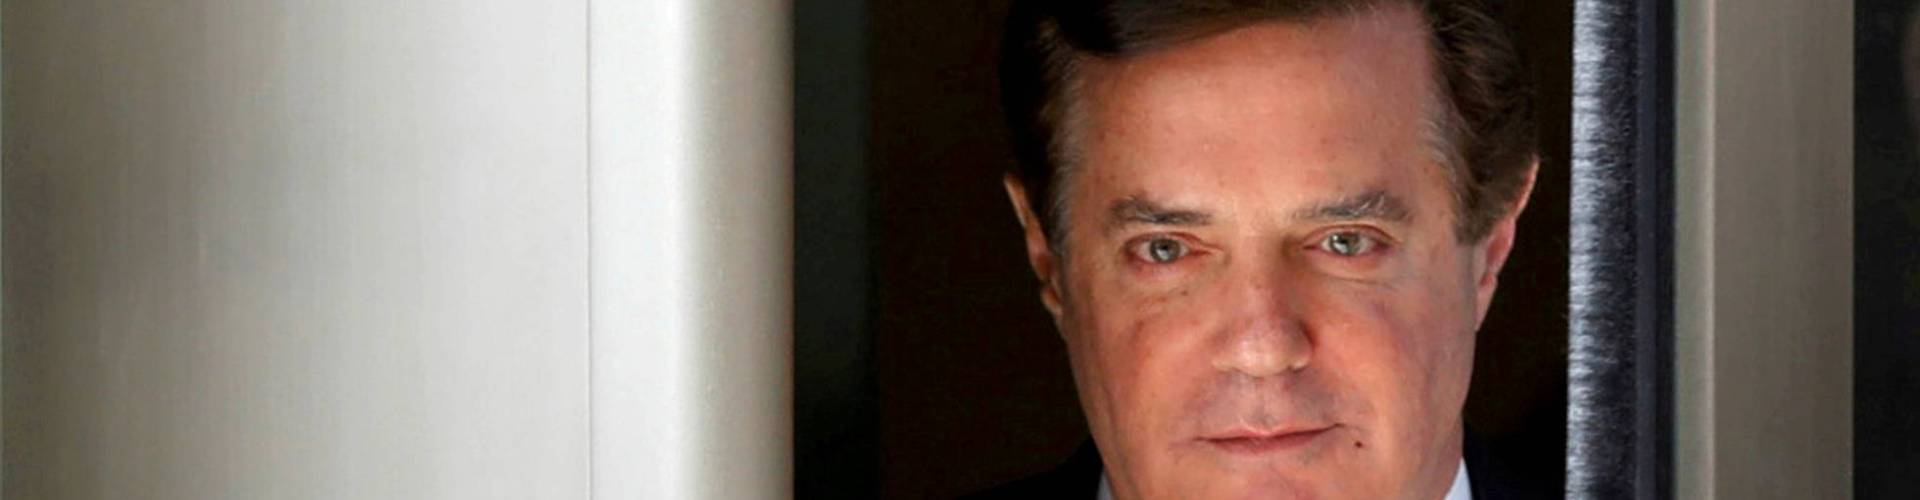 Manafort continúa a la defensiva